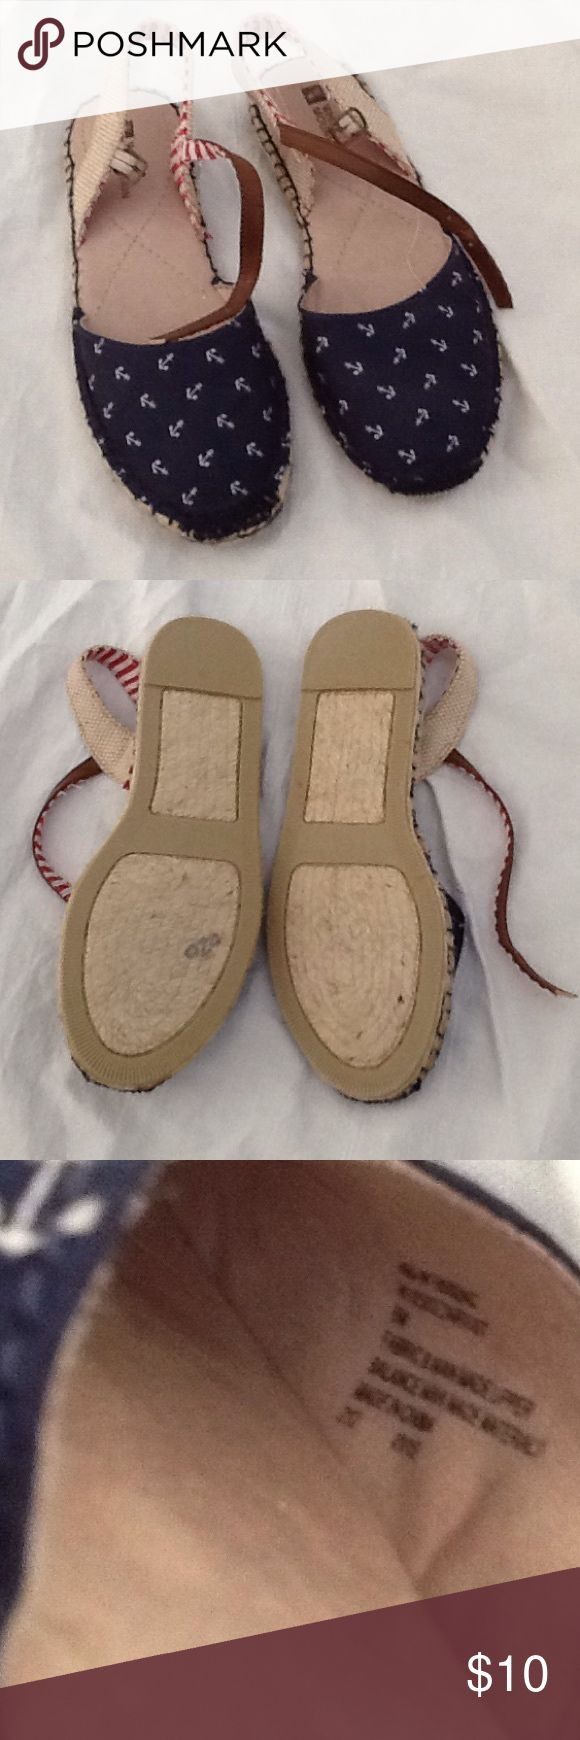 White Mountain Size 6M sandals Red white and blue details. Casual flat sandals. NWOT. Never worn. Material looks frayed a bit, but seems by design. White Mountain Shoes